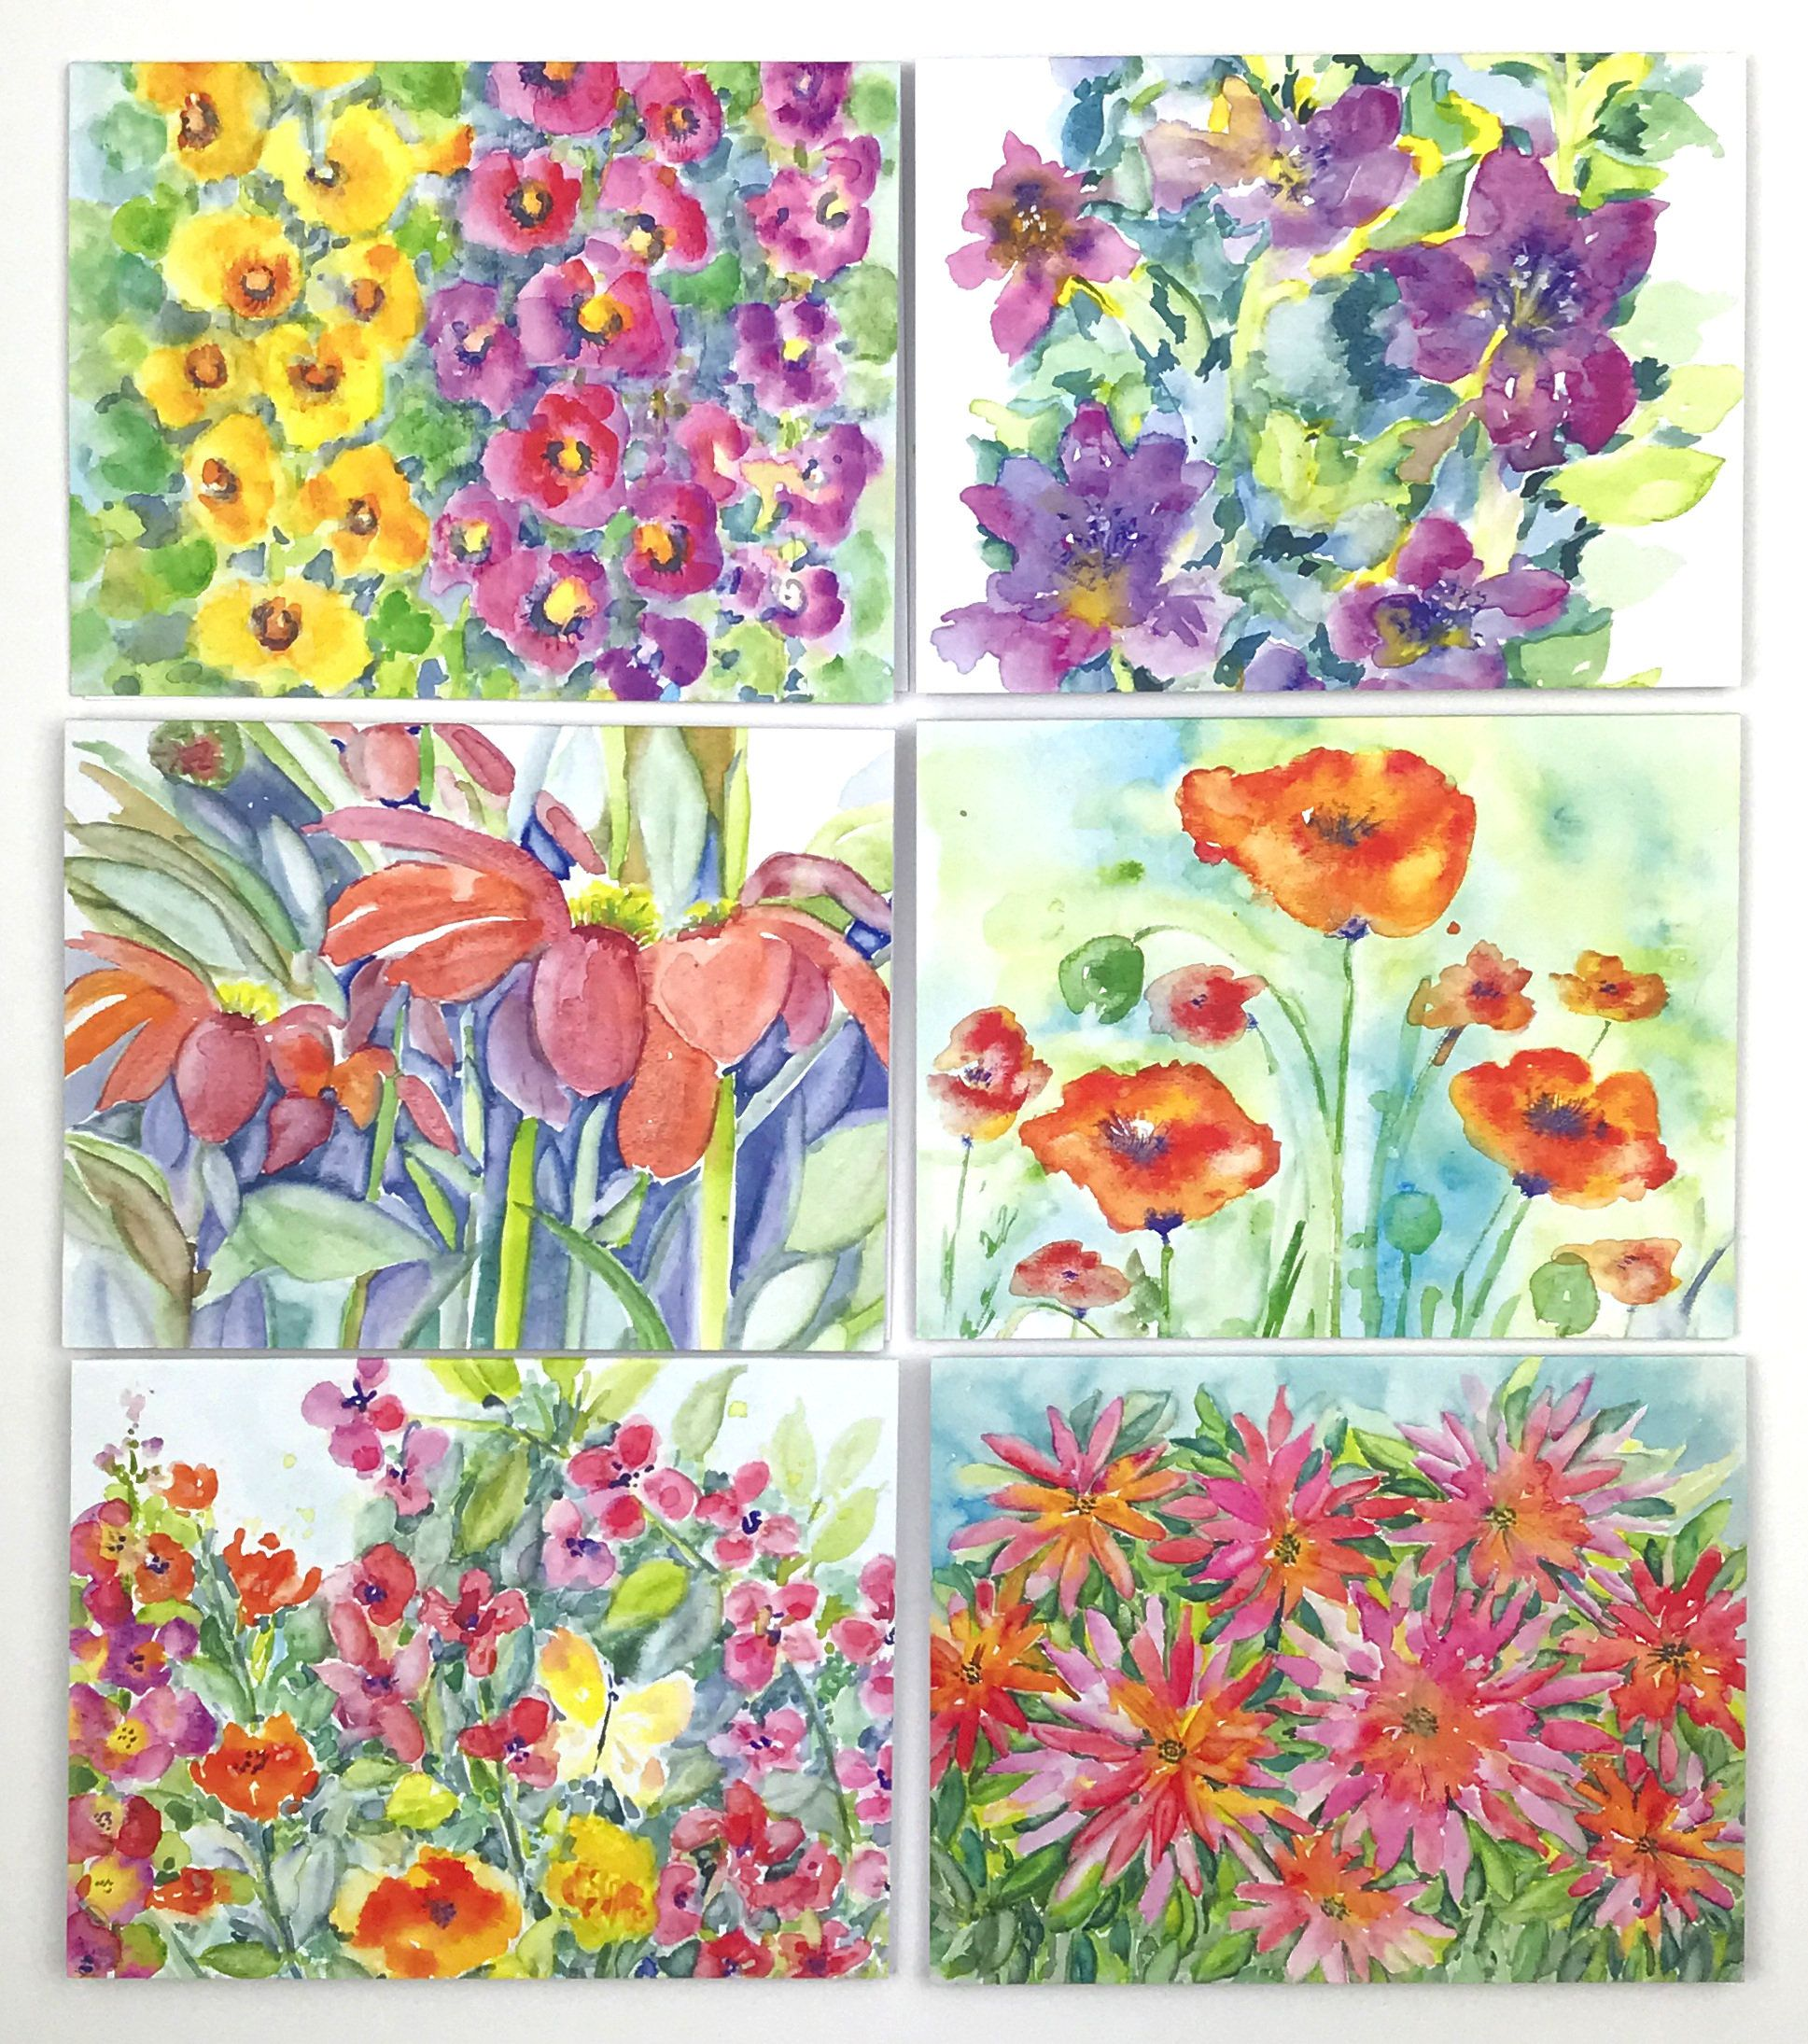 Garden Celebration Greeting Cards Floral Prints Fine Art Etsy Floral Note Cards Watercolor Flowers Paintings Note Card Gifts